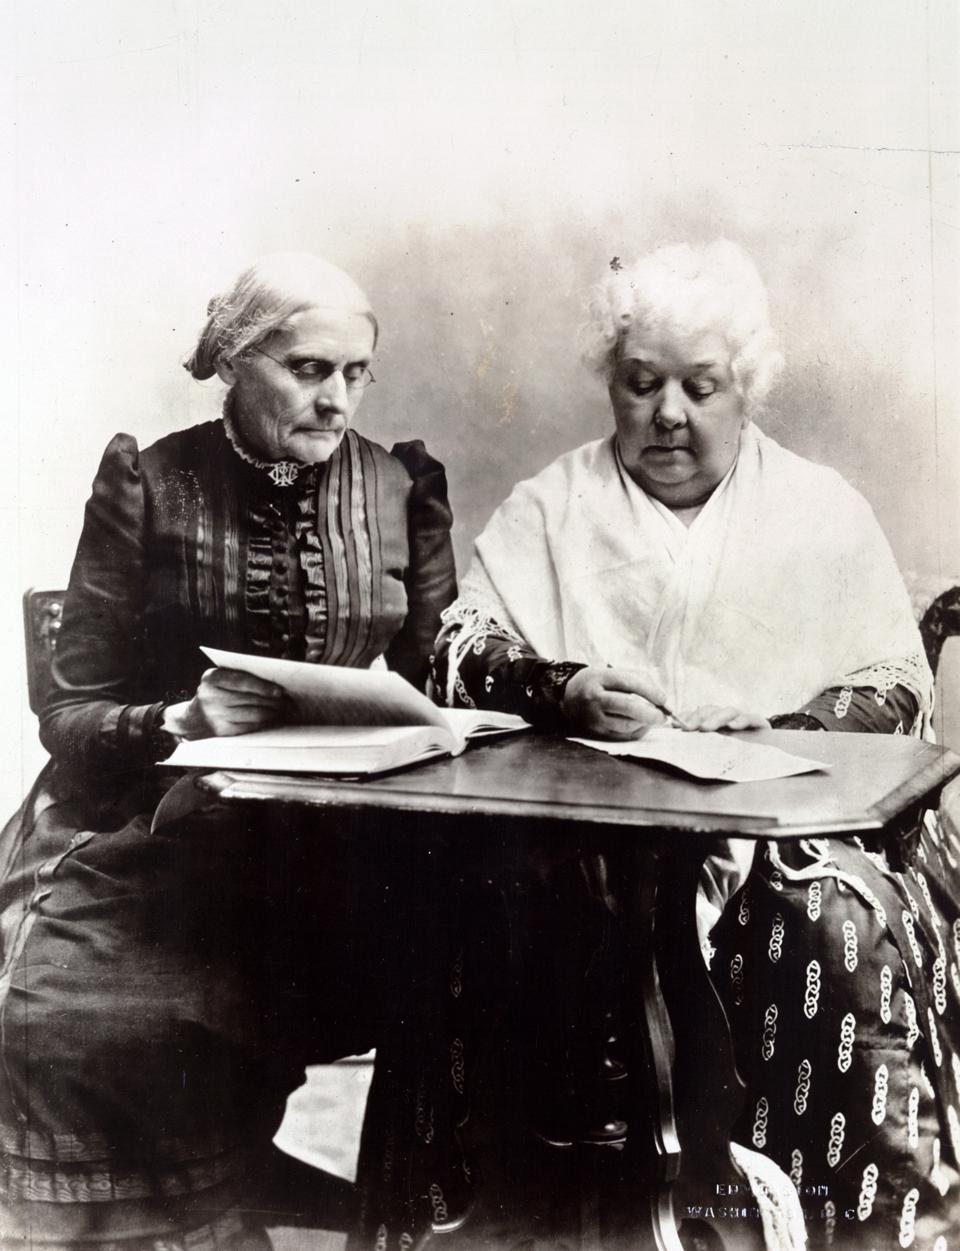 Susan B. Anthony and Elizabeth Cady Stanton in 1899, sitting at a desk